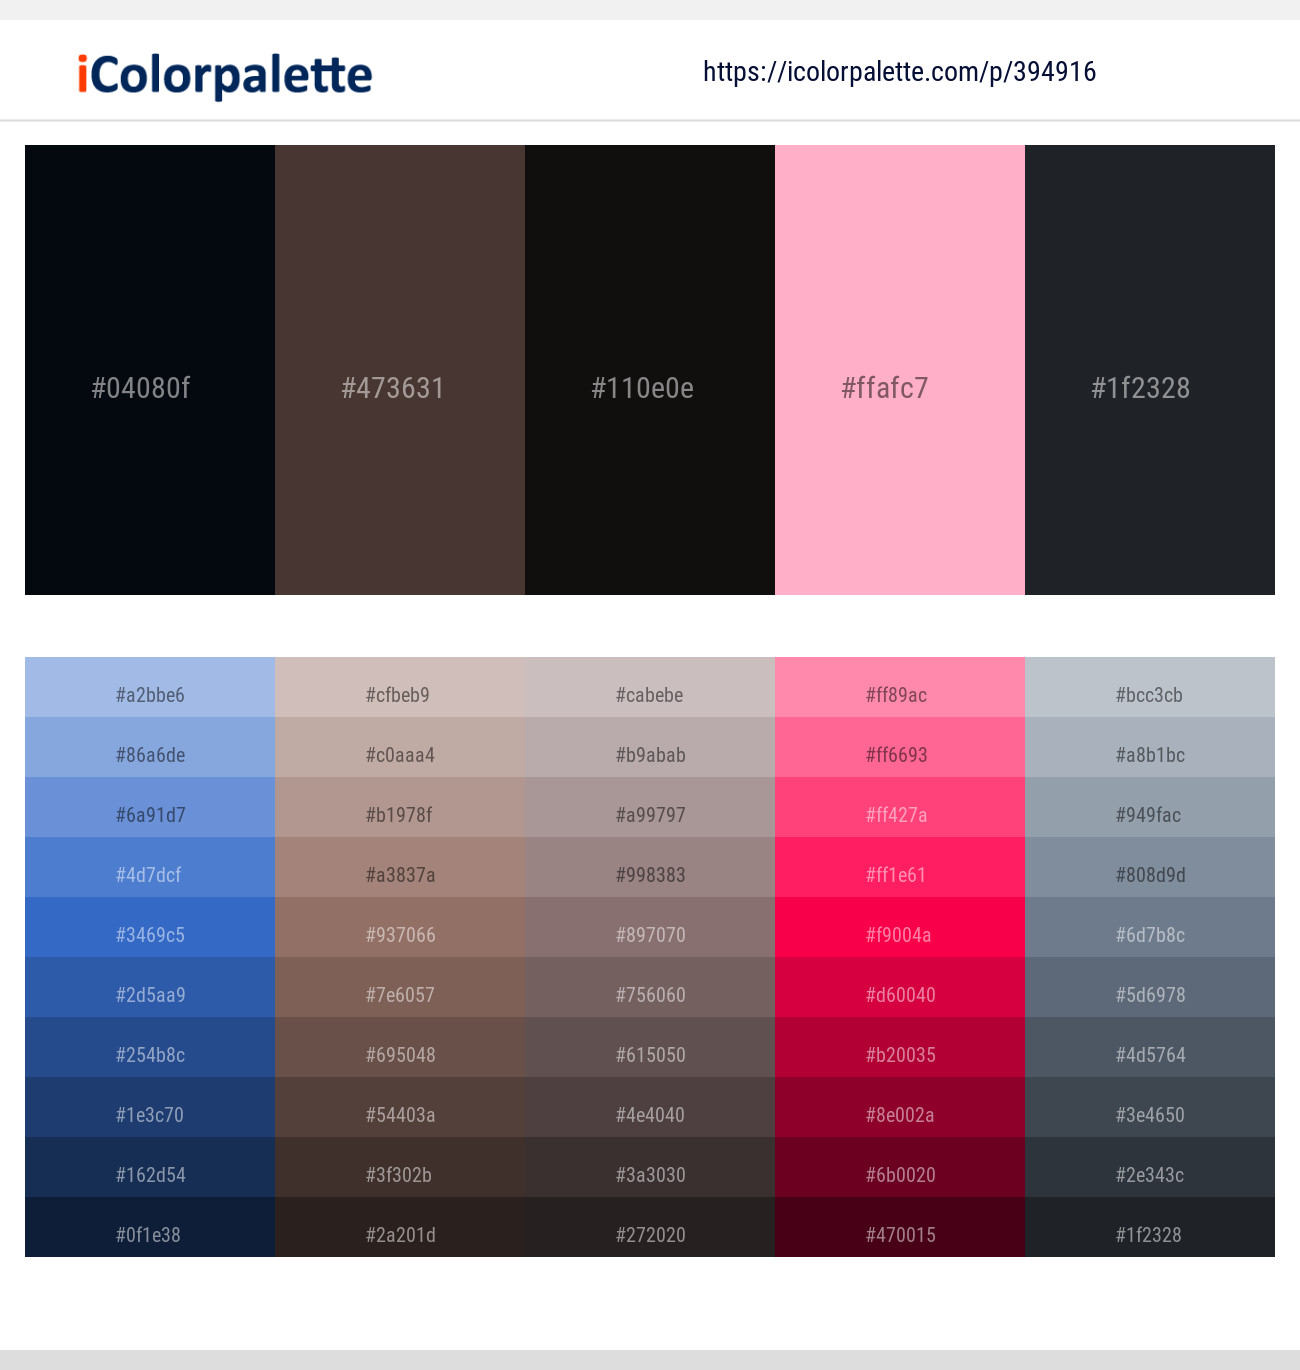 837 Color Palettes with Light Pink Color in 2019 | iColorpalette